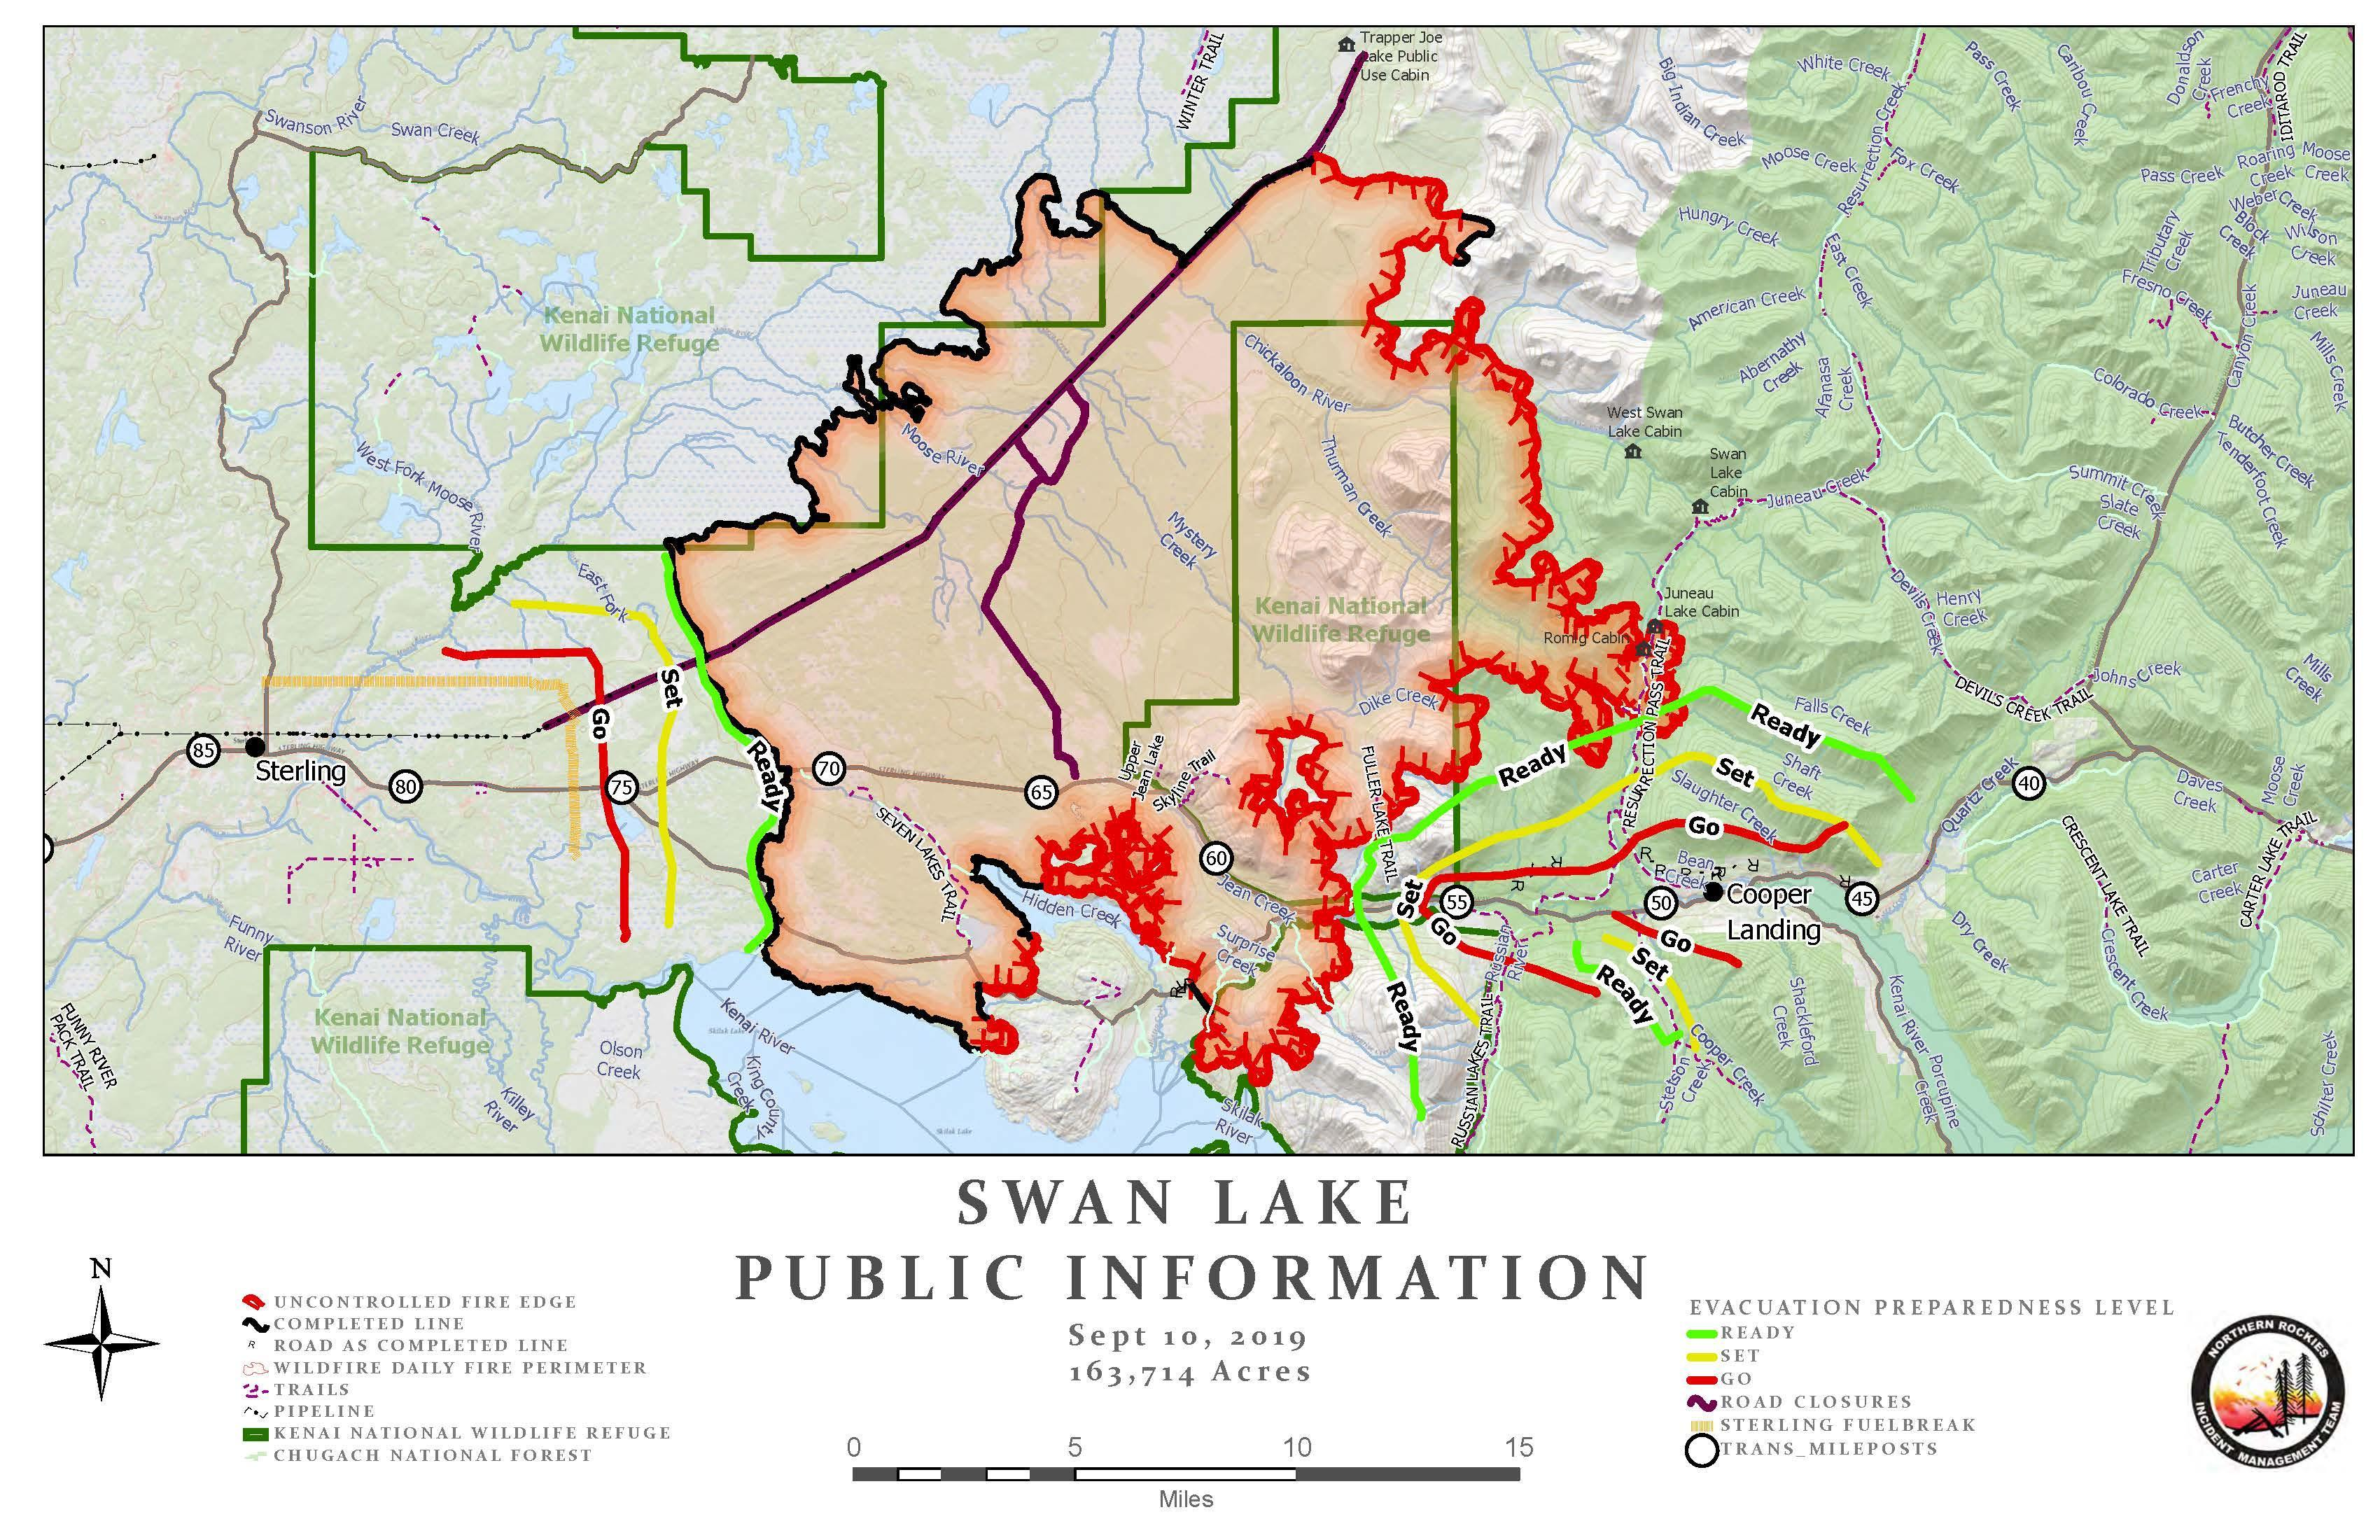 Swan Lake Fire Info Map - no changes from 9/10/19